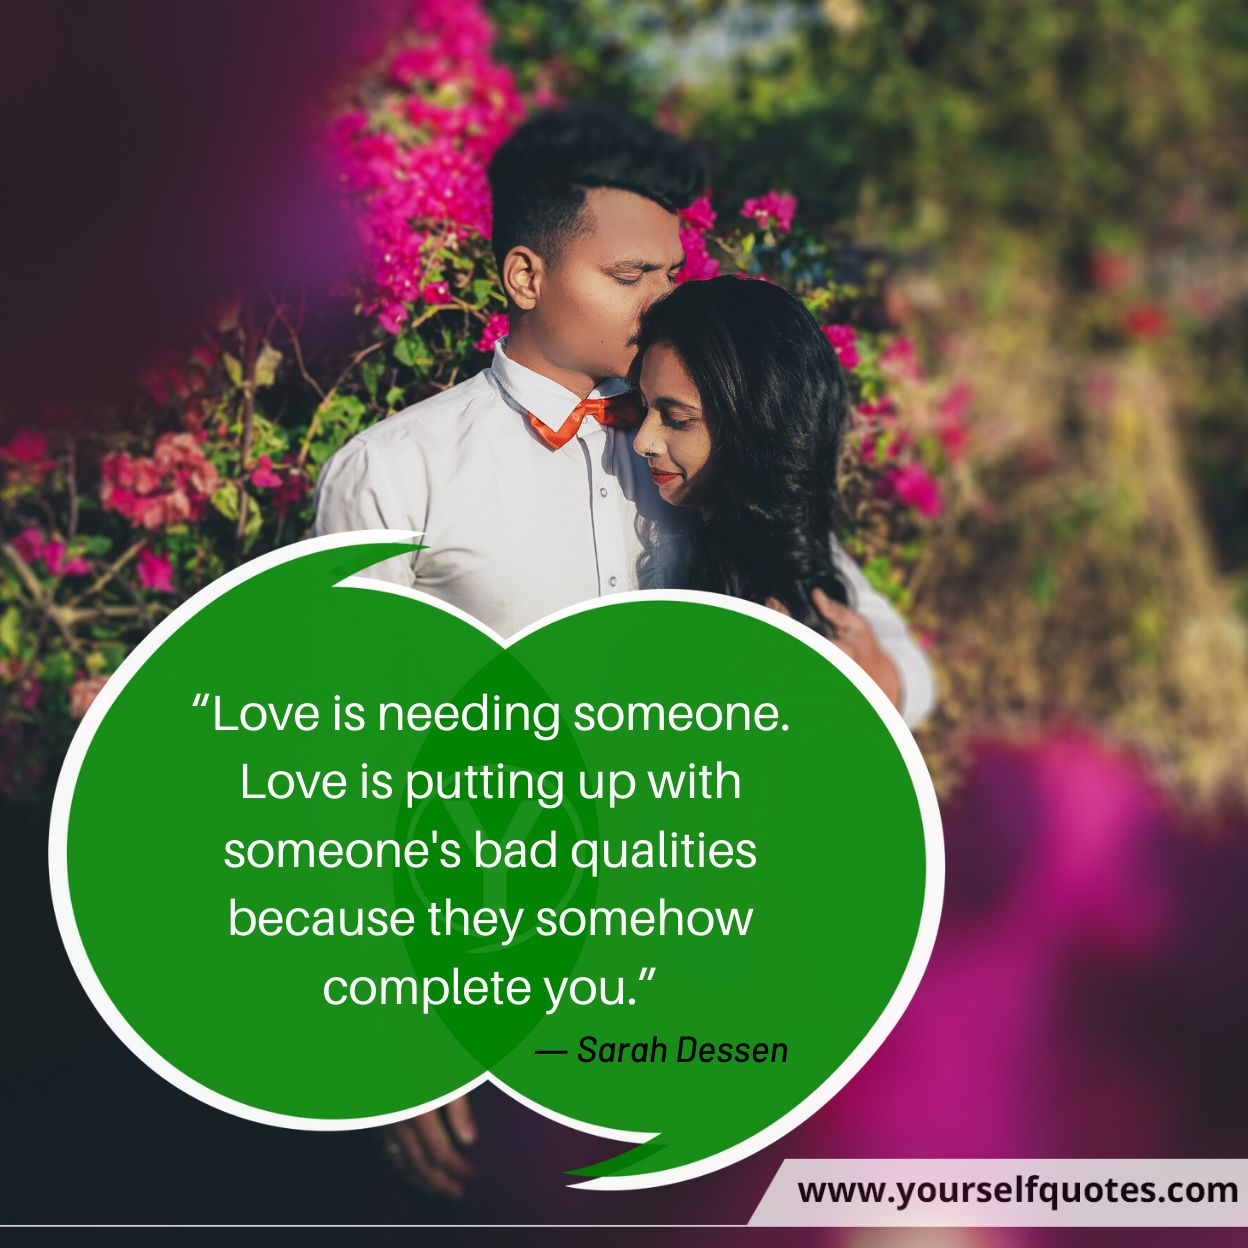 Quotes on Love by Sarah Dessen